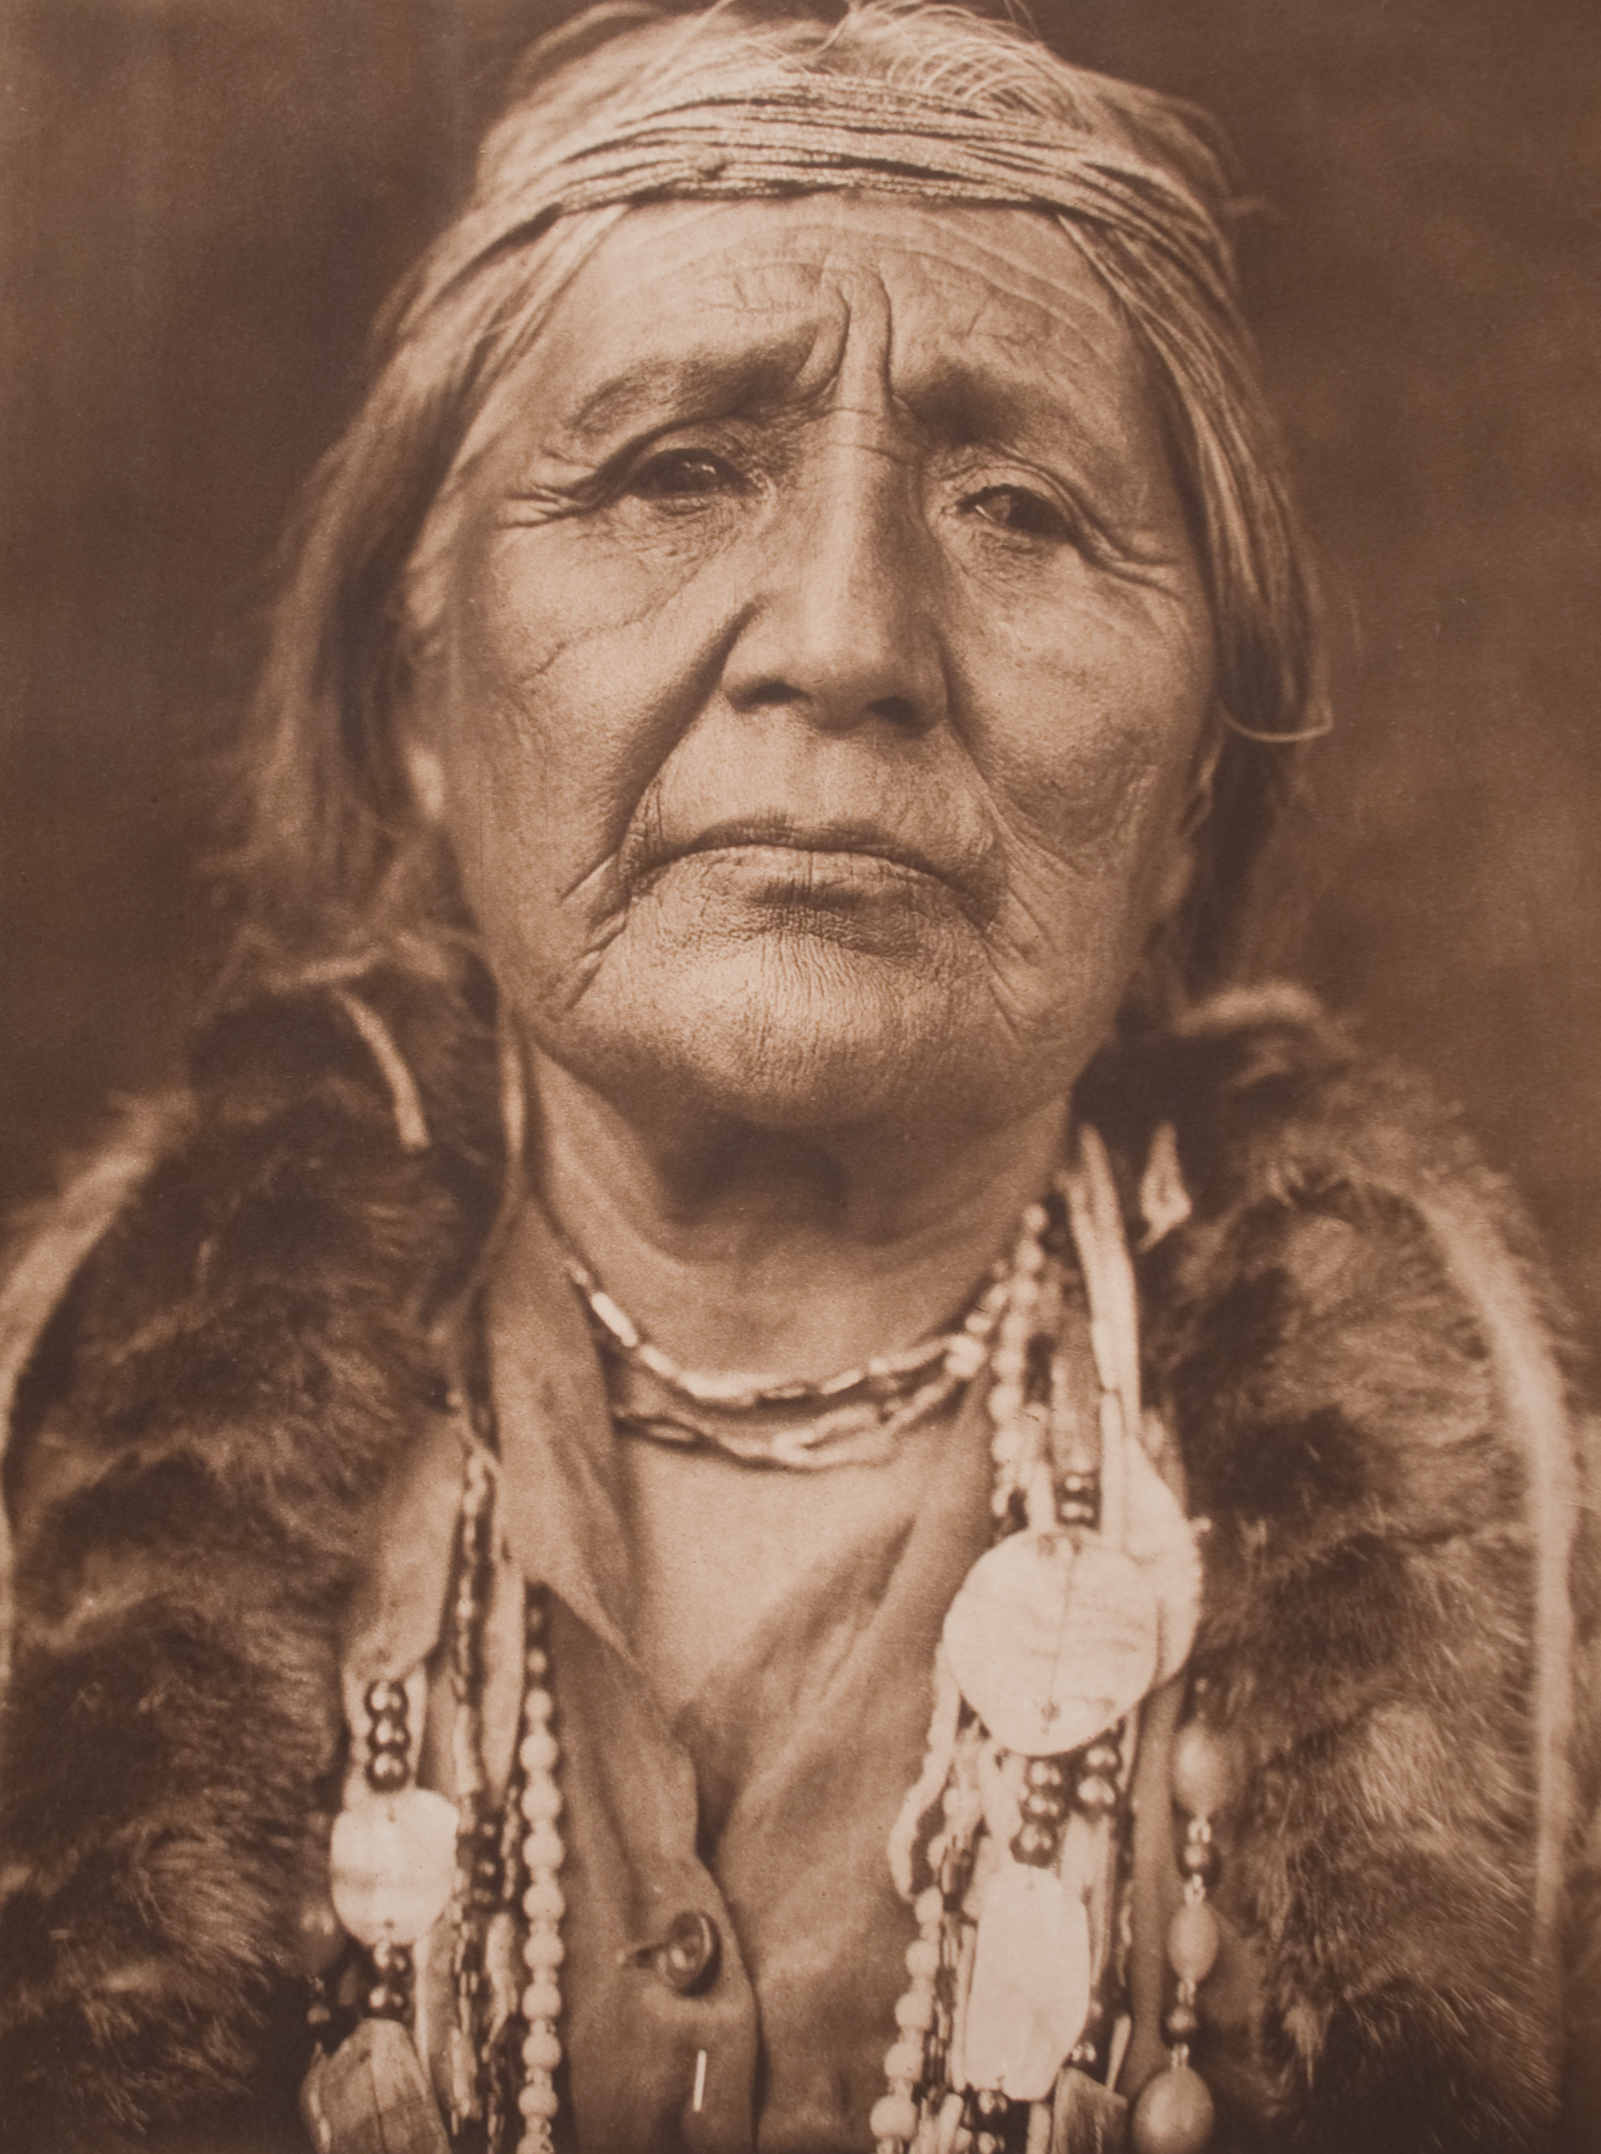 Edward Curtis Shadow Catcher Photographer Of Native